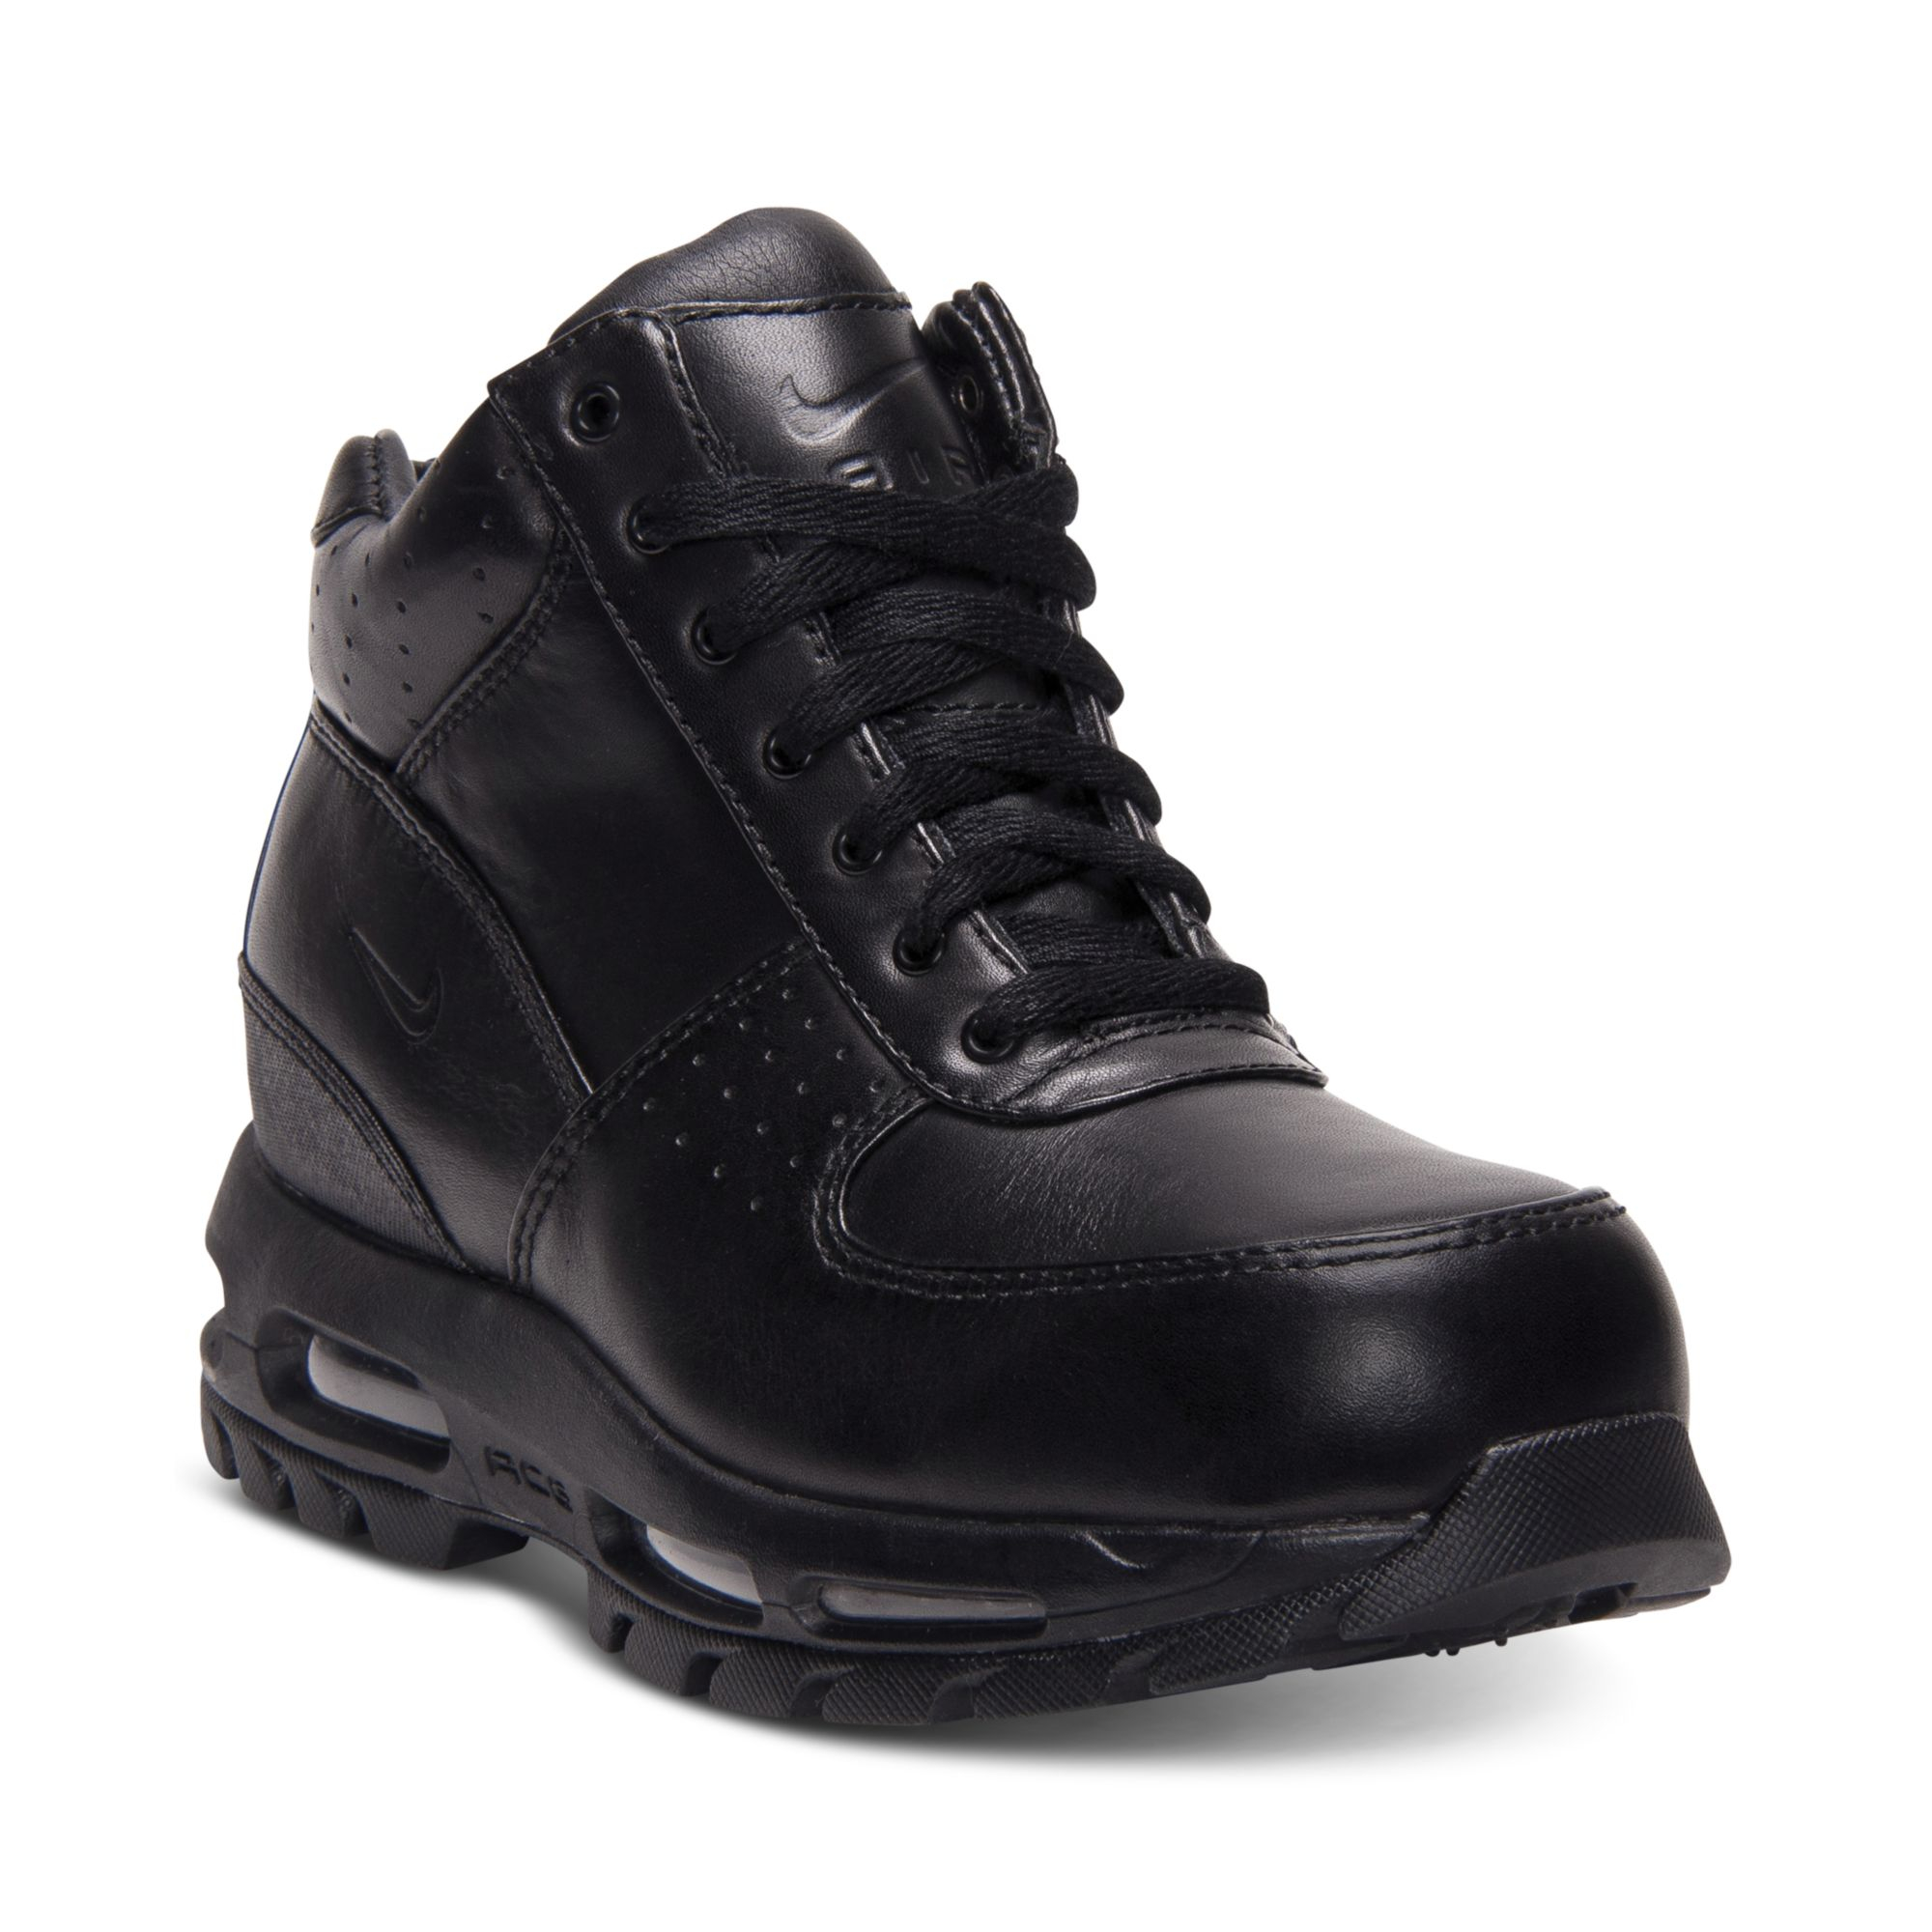 Nike Air Max Goadome Boots In Black For Men Lyst